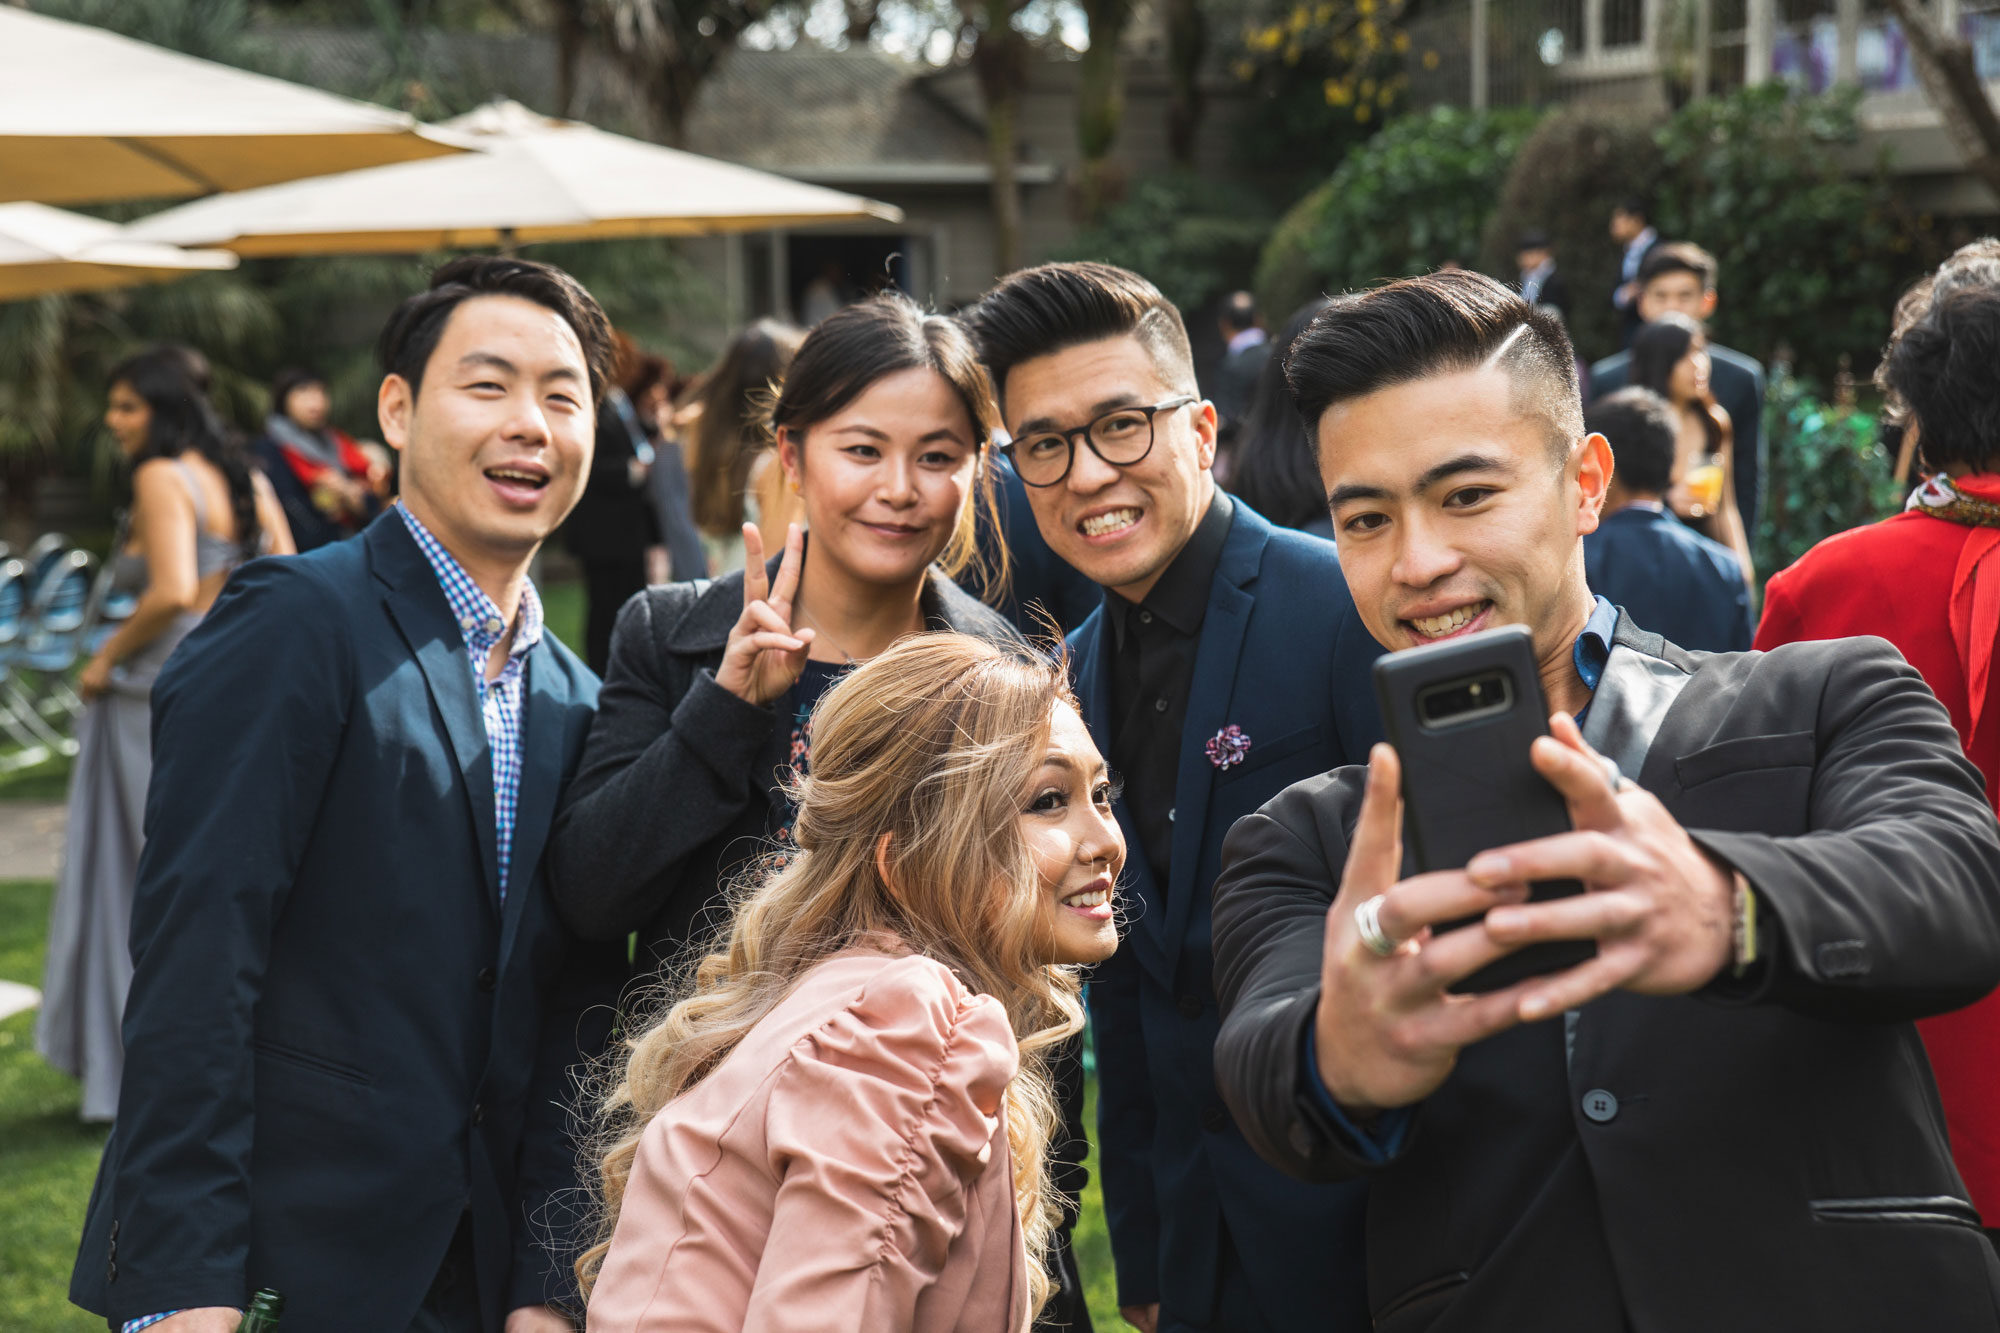 wedding guests taking a selfie